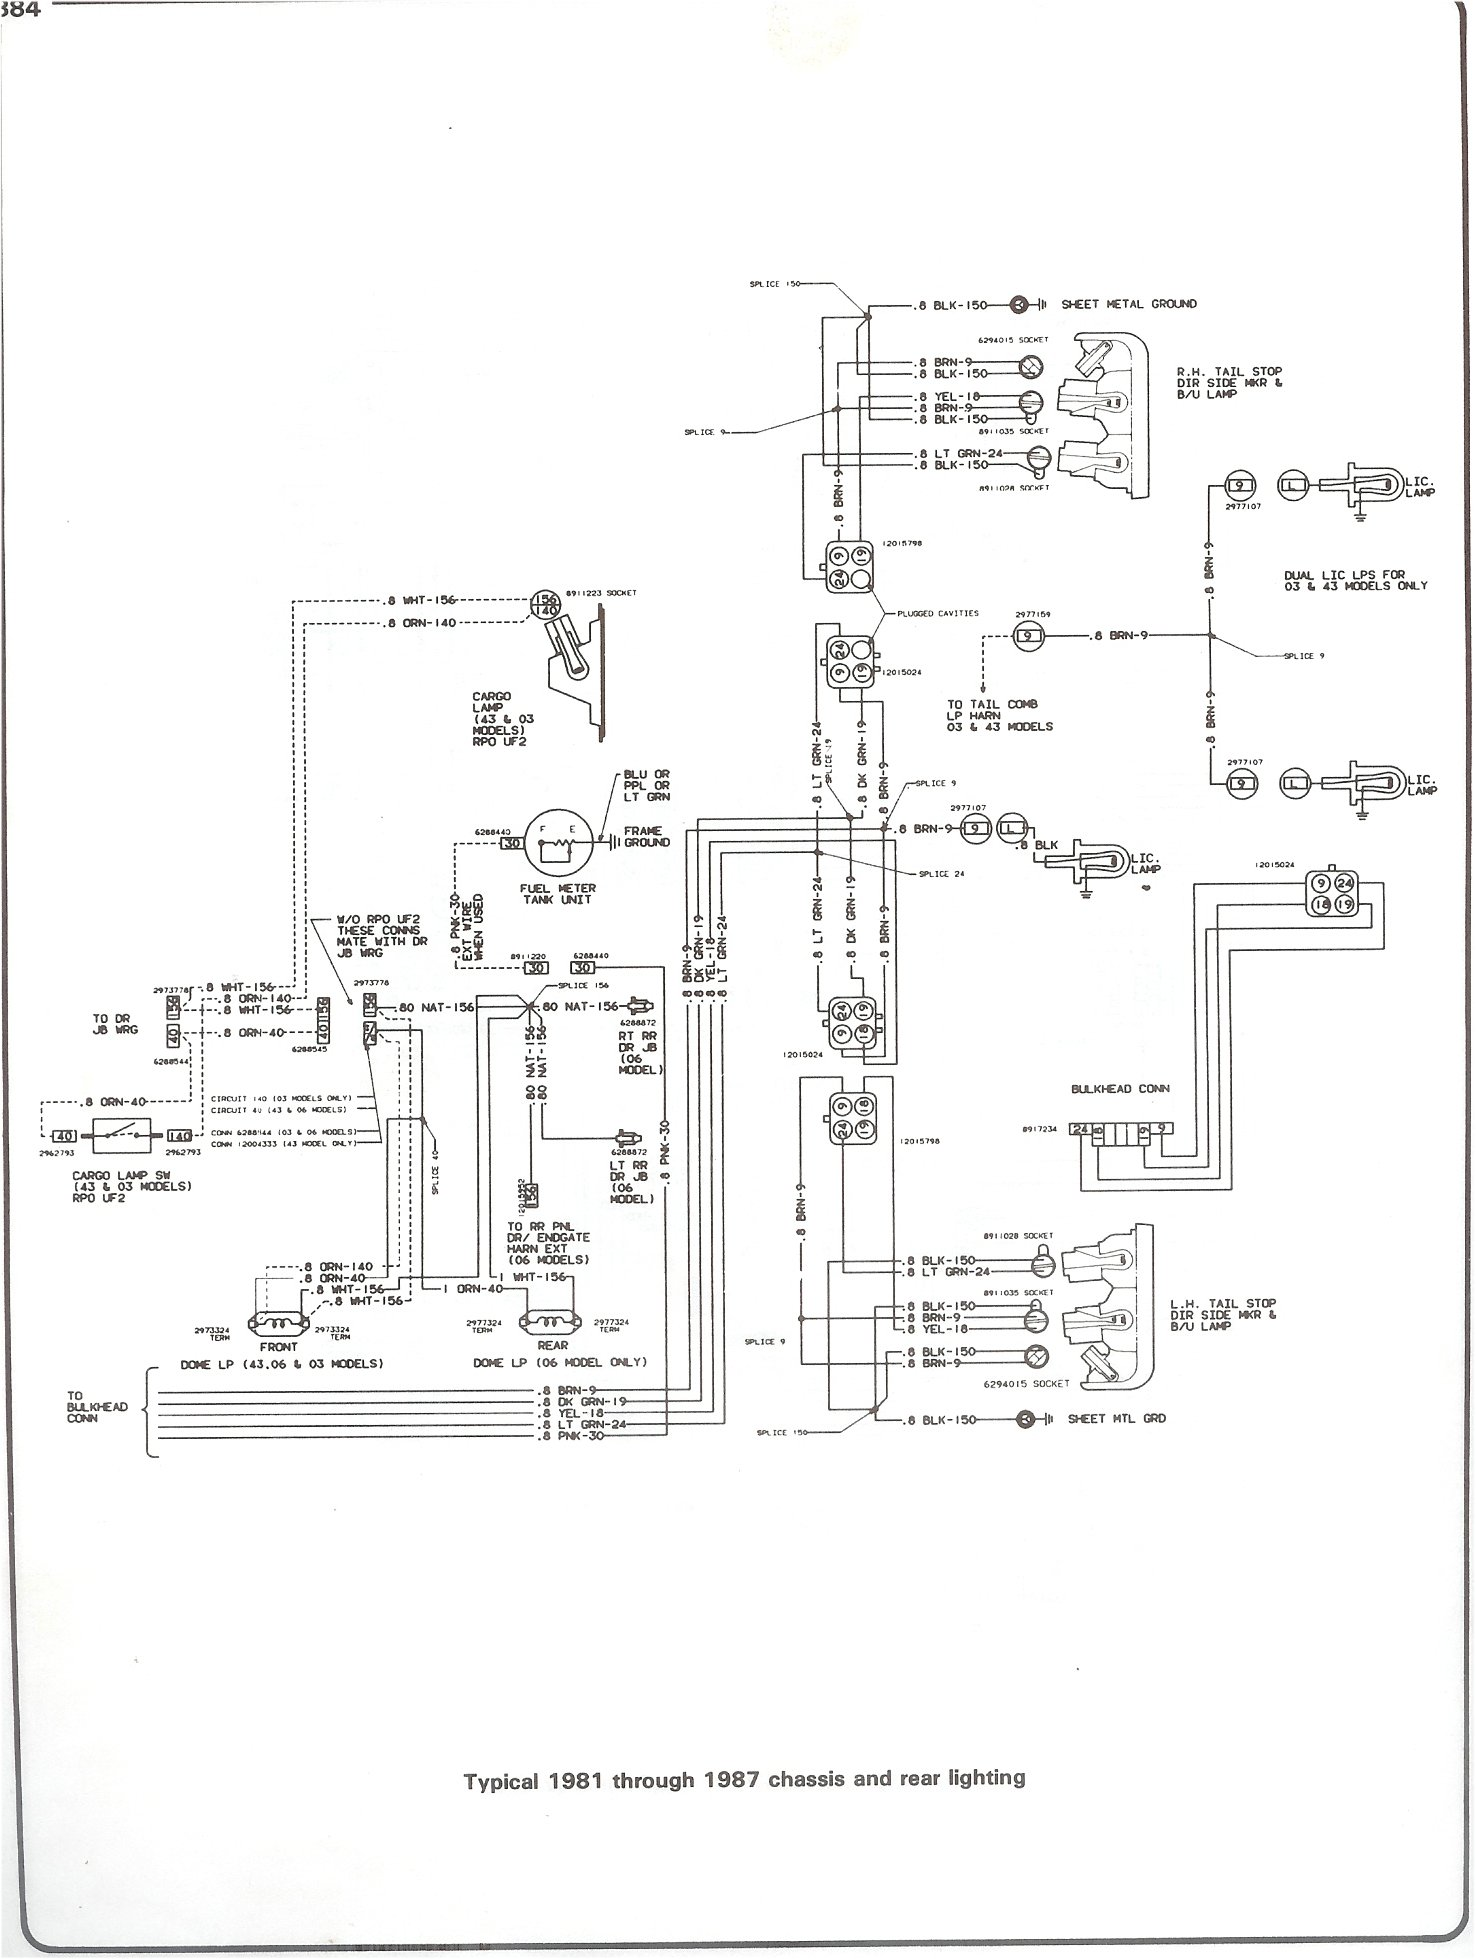 Wiring Diagram For Blazer